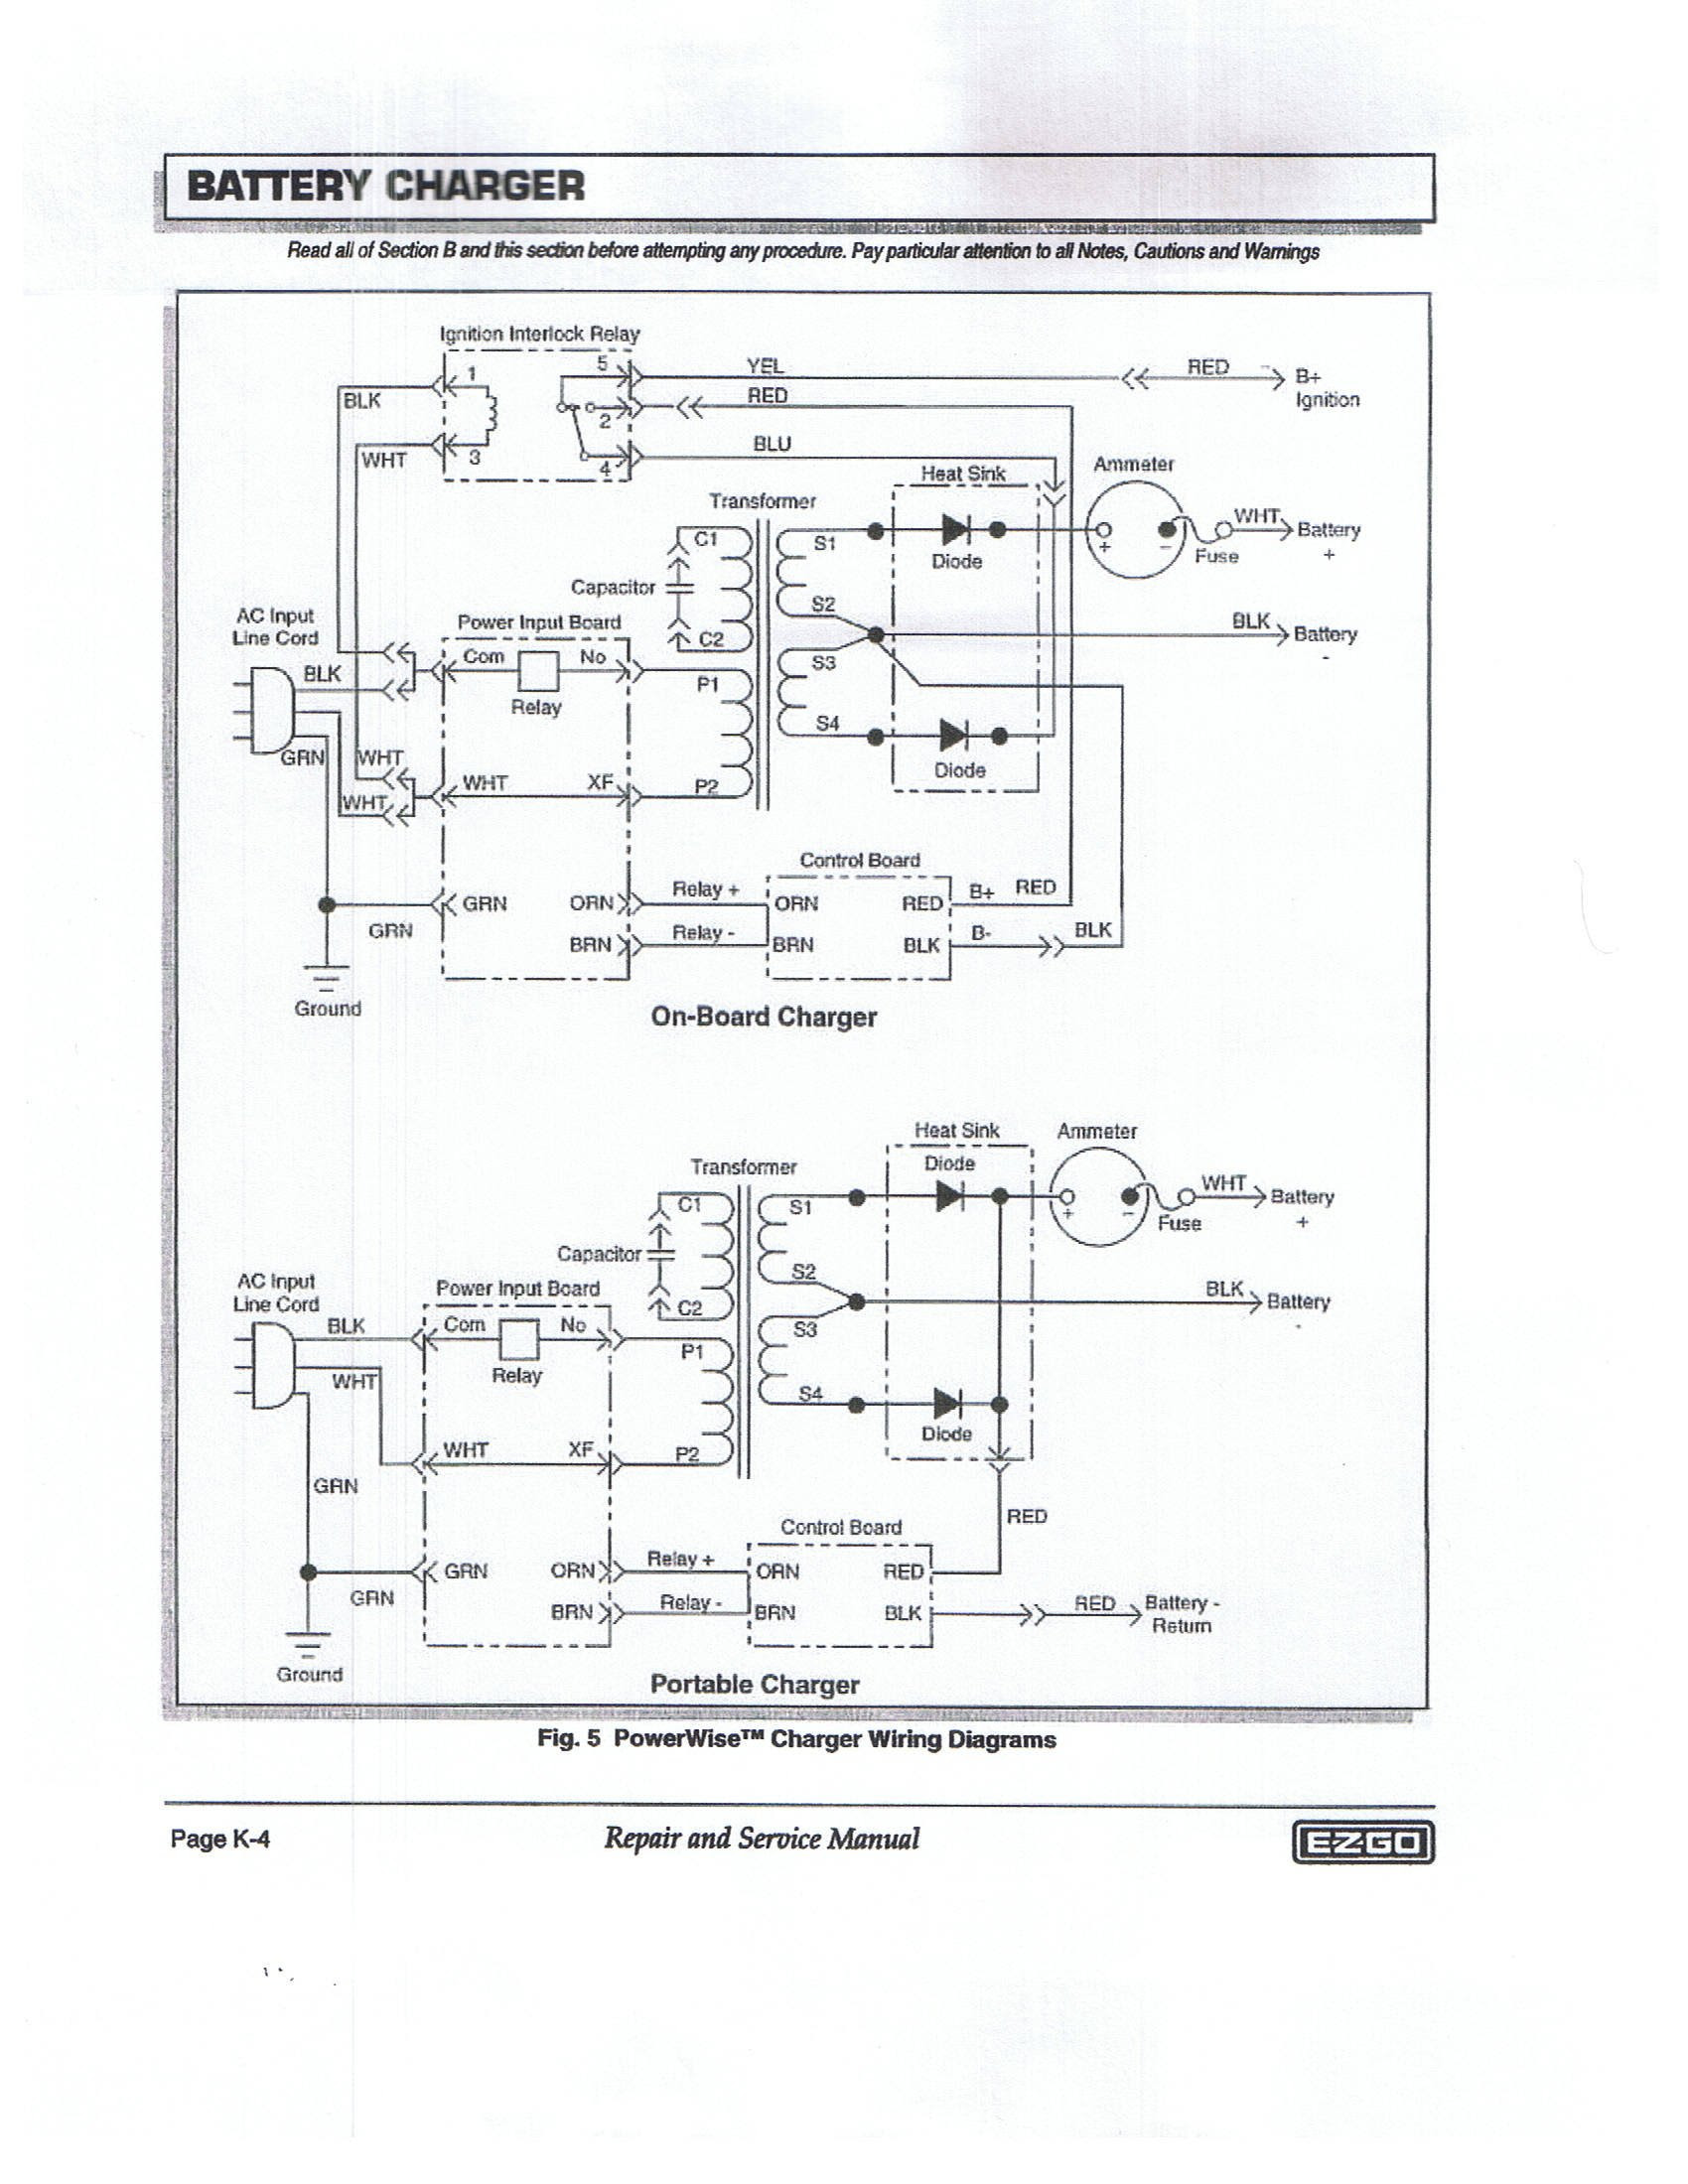 1986 Par Car Wiring Diagram Full Hd Version Wiring Diagram Lexi Diagram L Wmc Fr